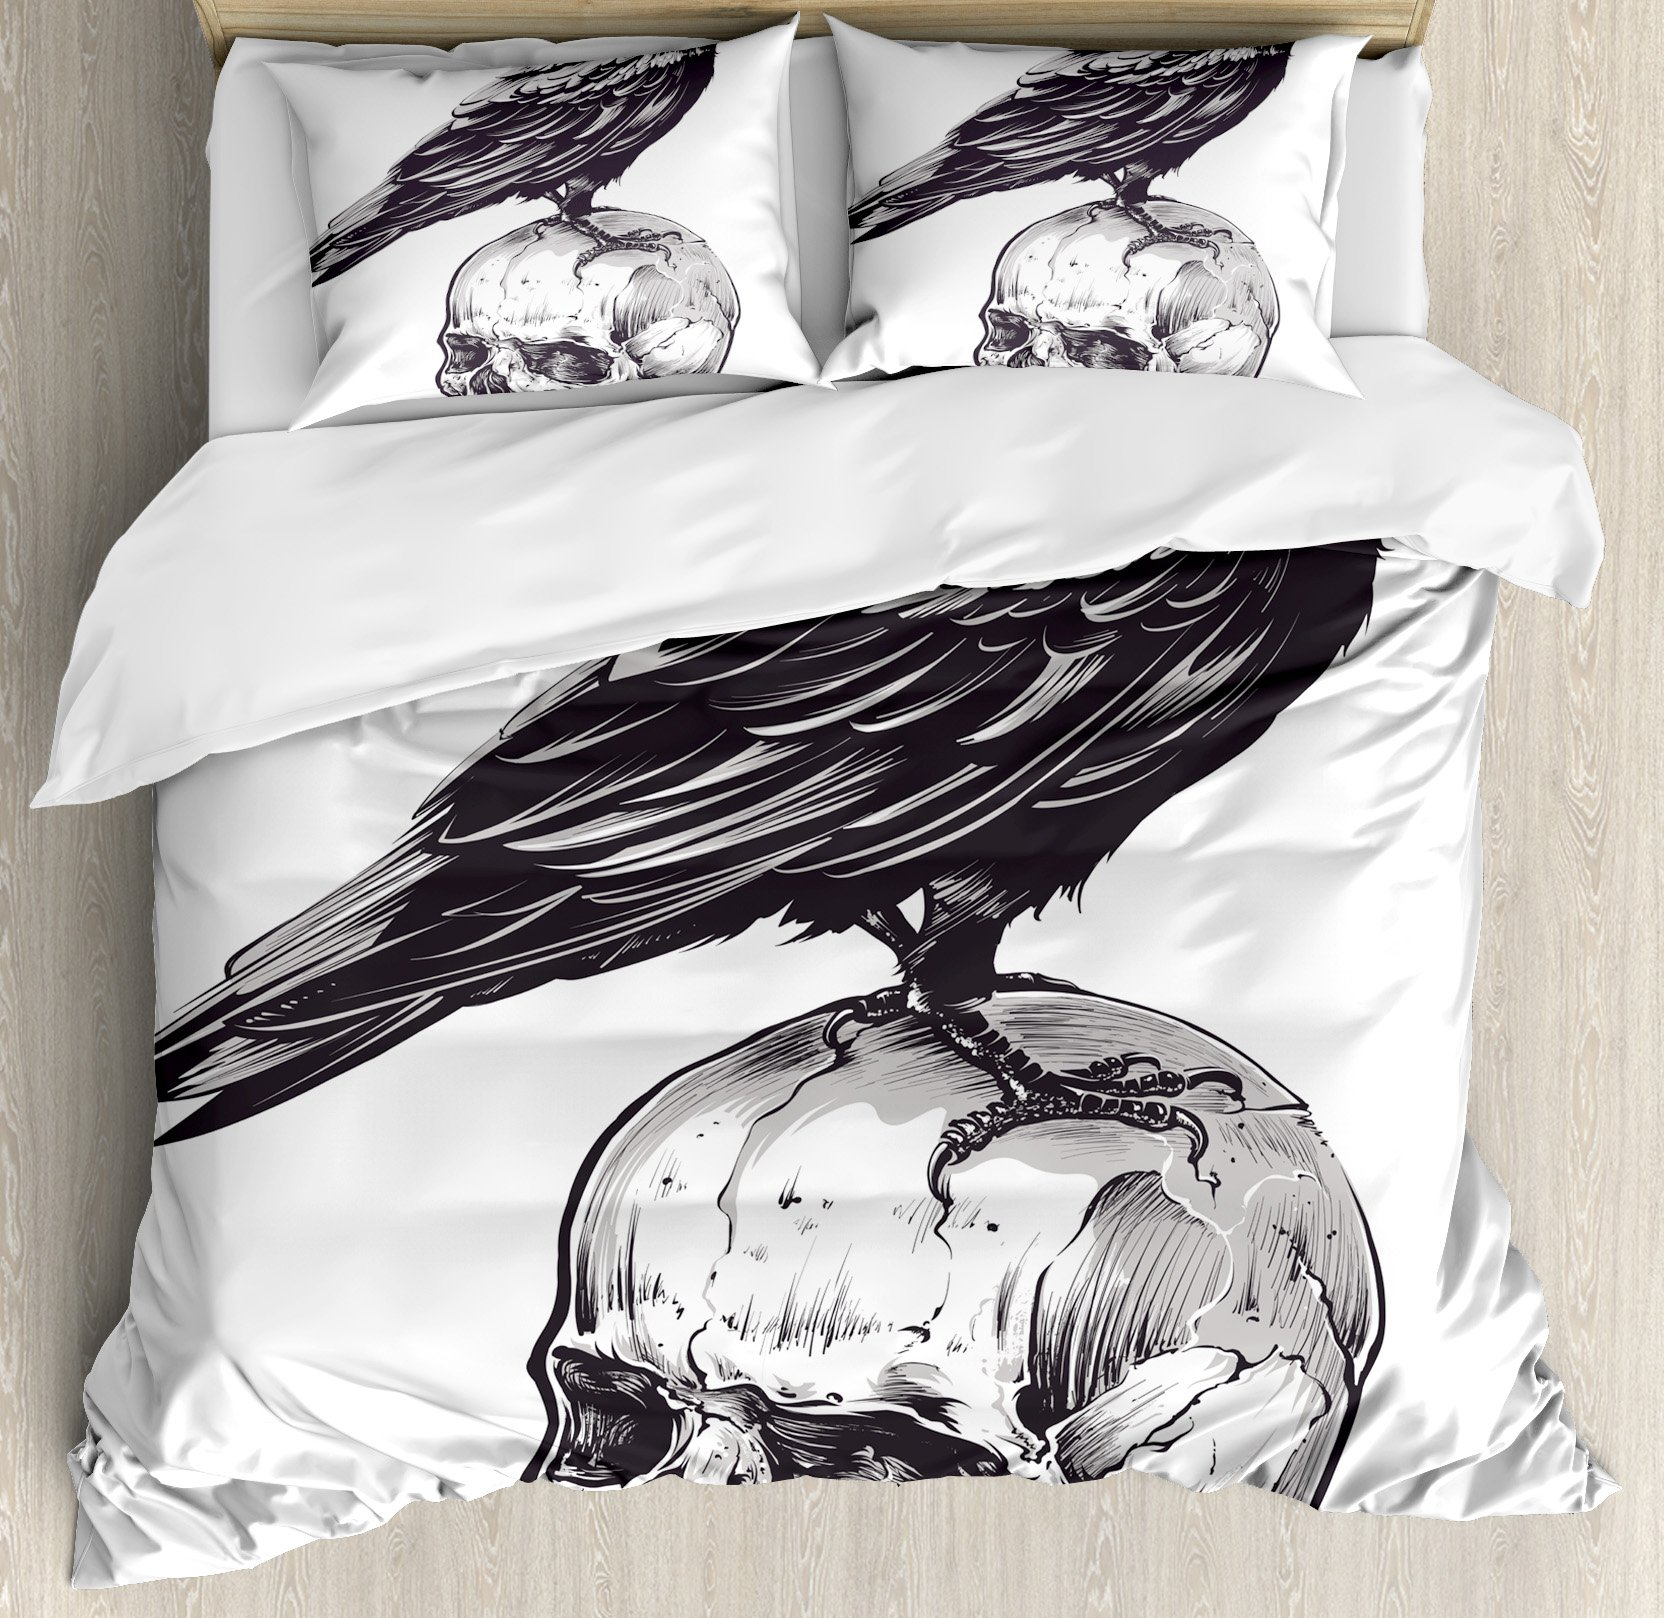 Scary King Size Duvet Cover Set by Ambesonne, Scary Movies Theme Crow Bird Sitting on a Human Old Skull Sketchy Image, Decorative 3 Piece Bedding Set with 2 Pillow Shams, Charcoal Grey White